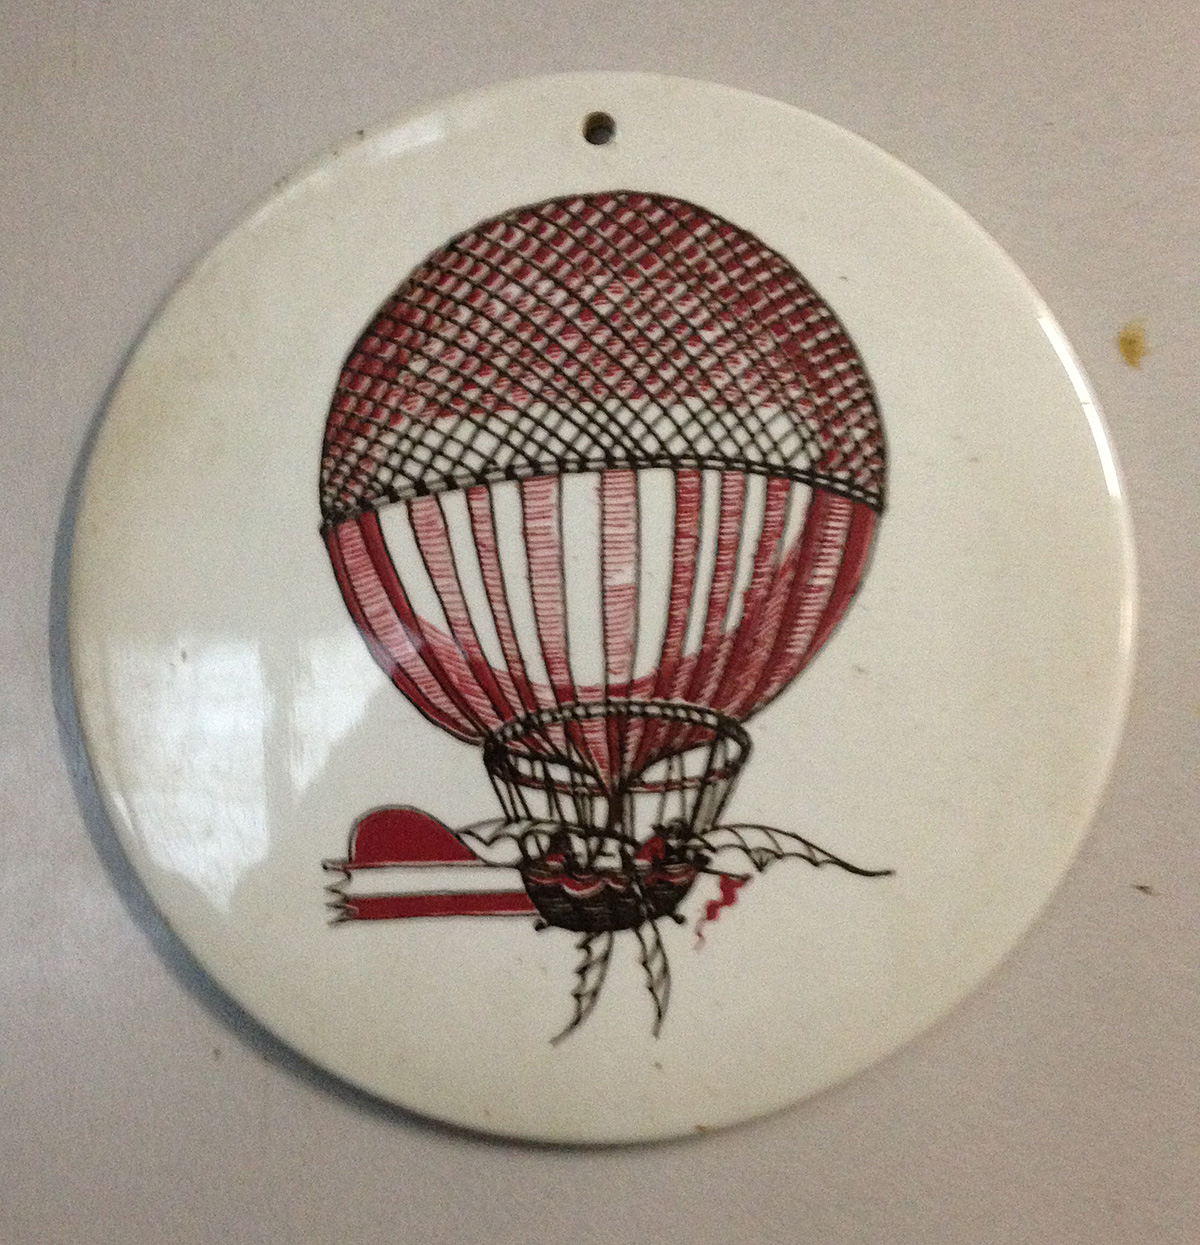 1st Cross Channel Balloon Flight Commemorative China Disk